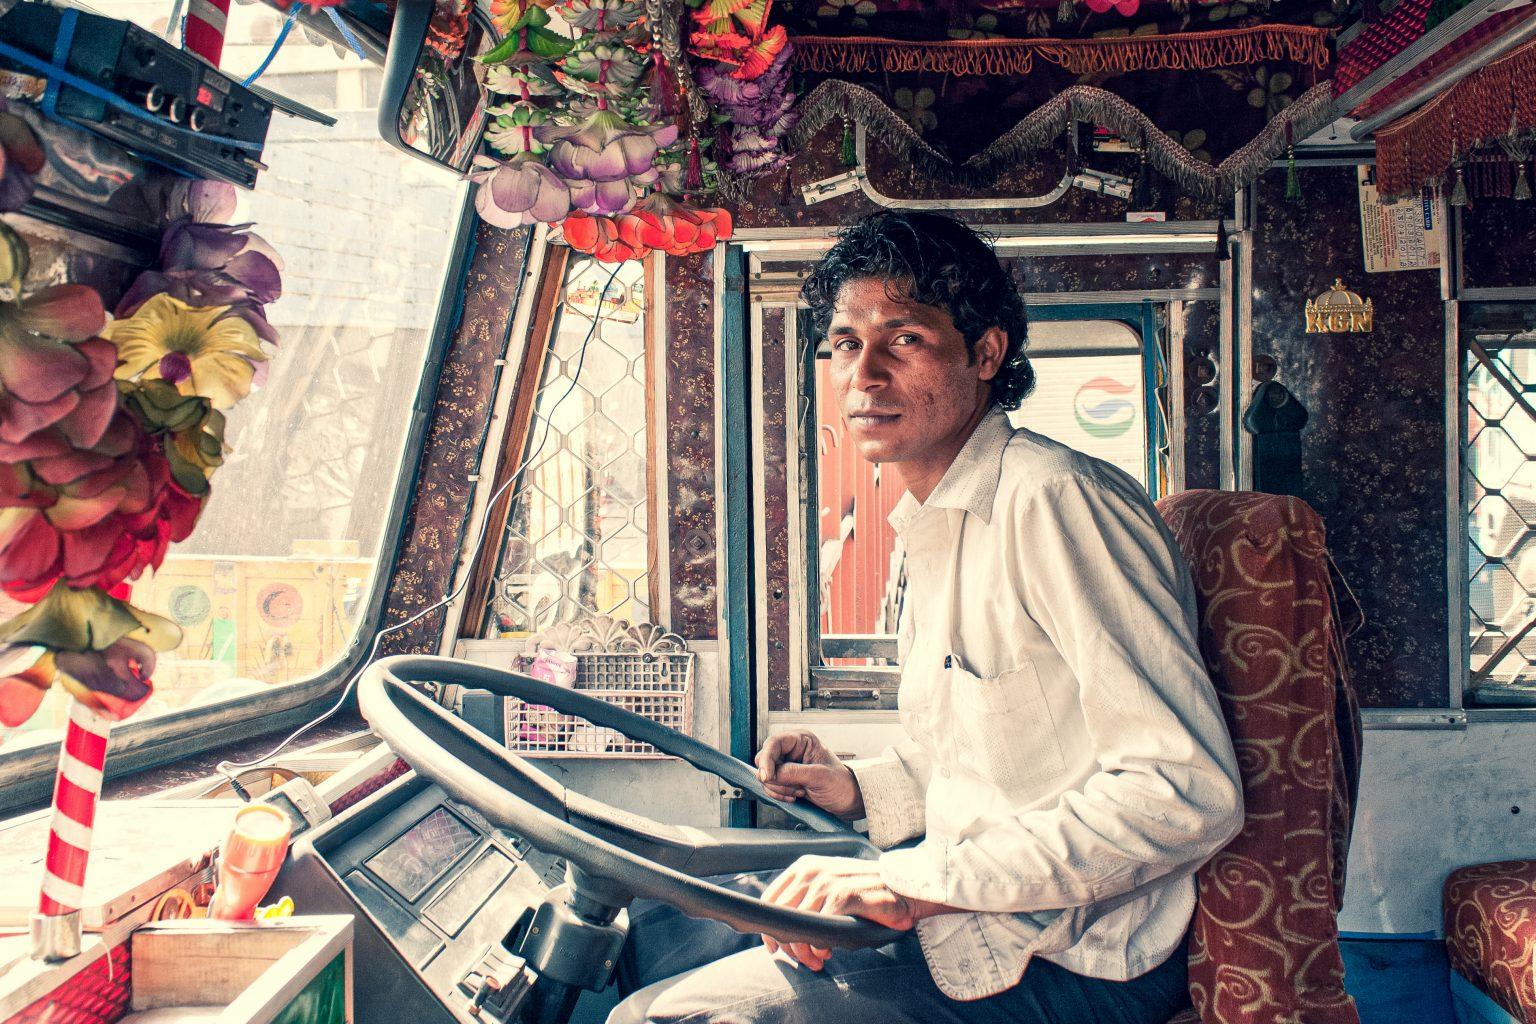 Image: Truck driver sitting in the cab